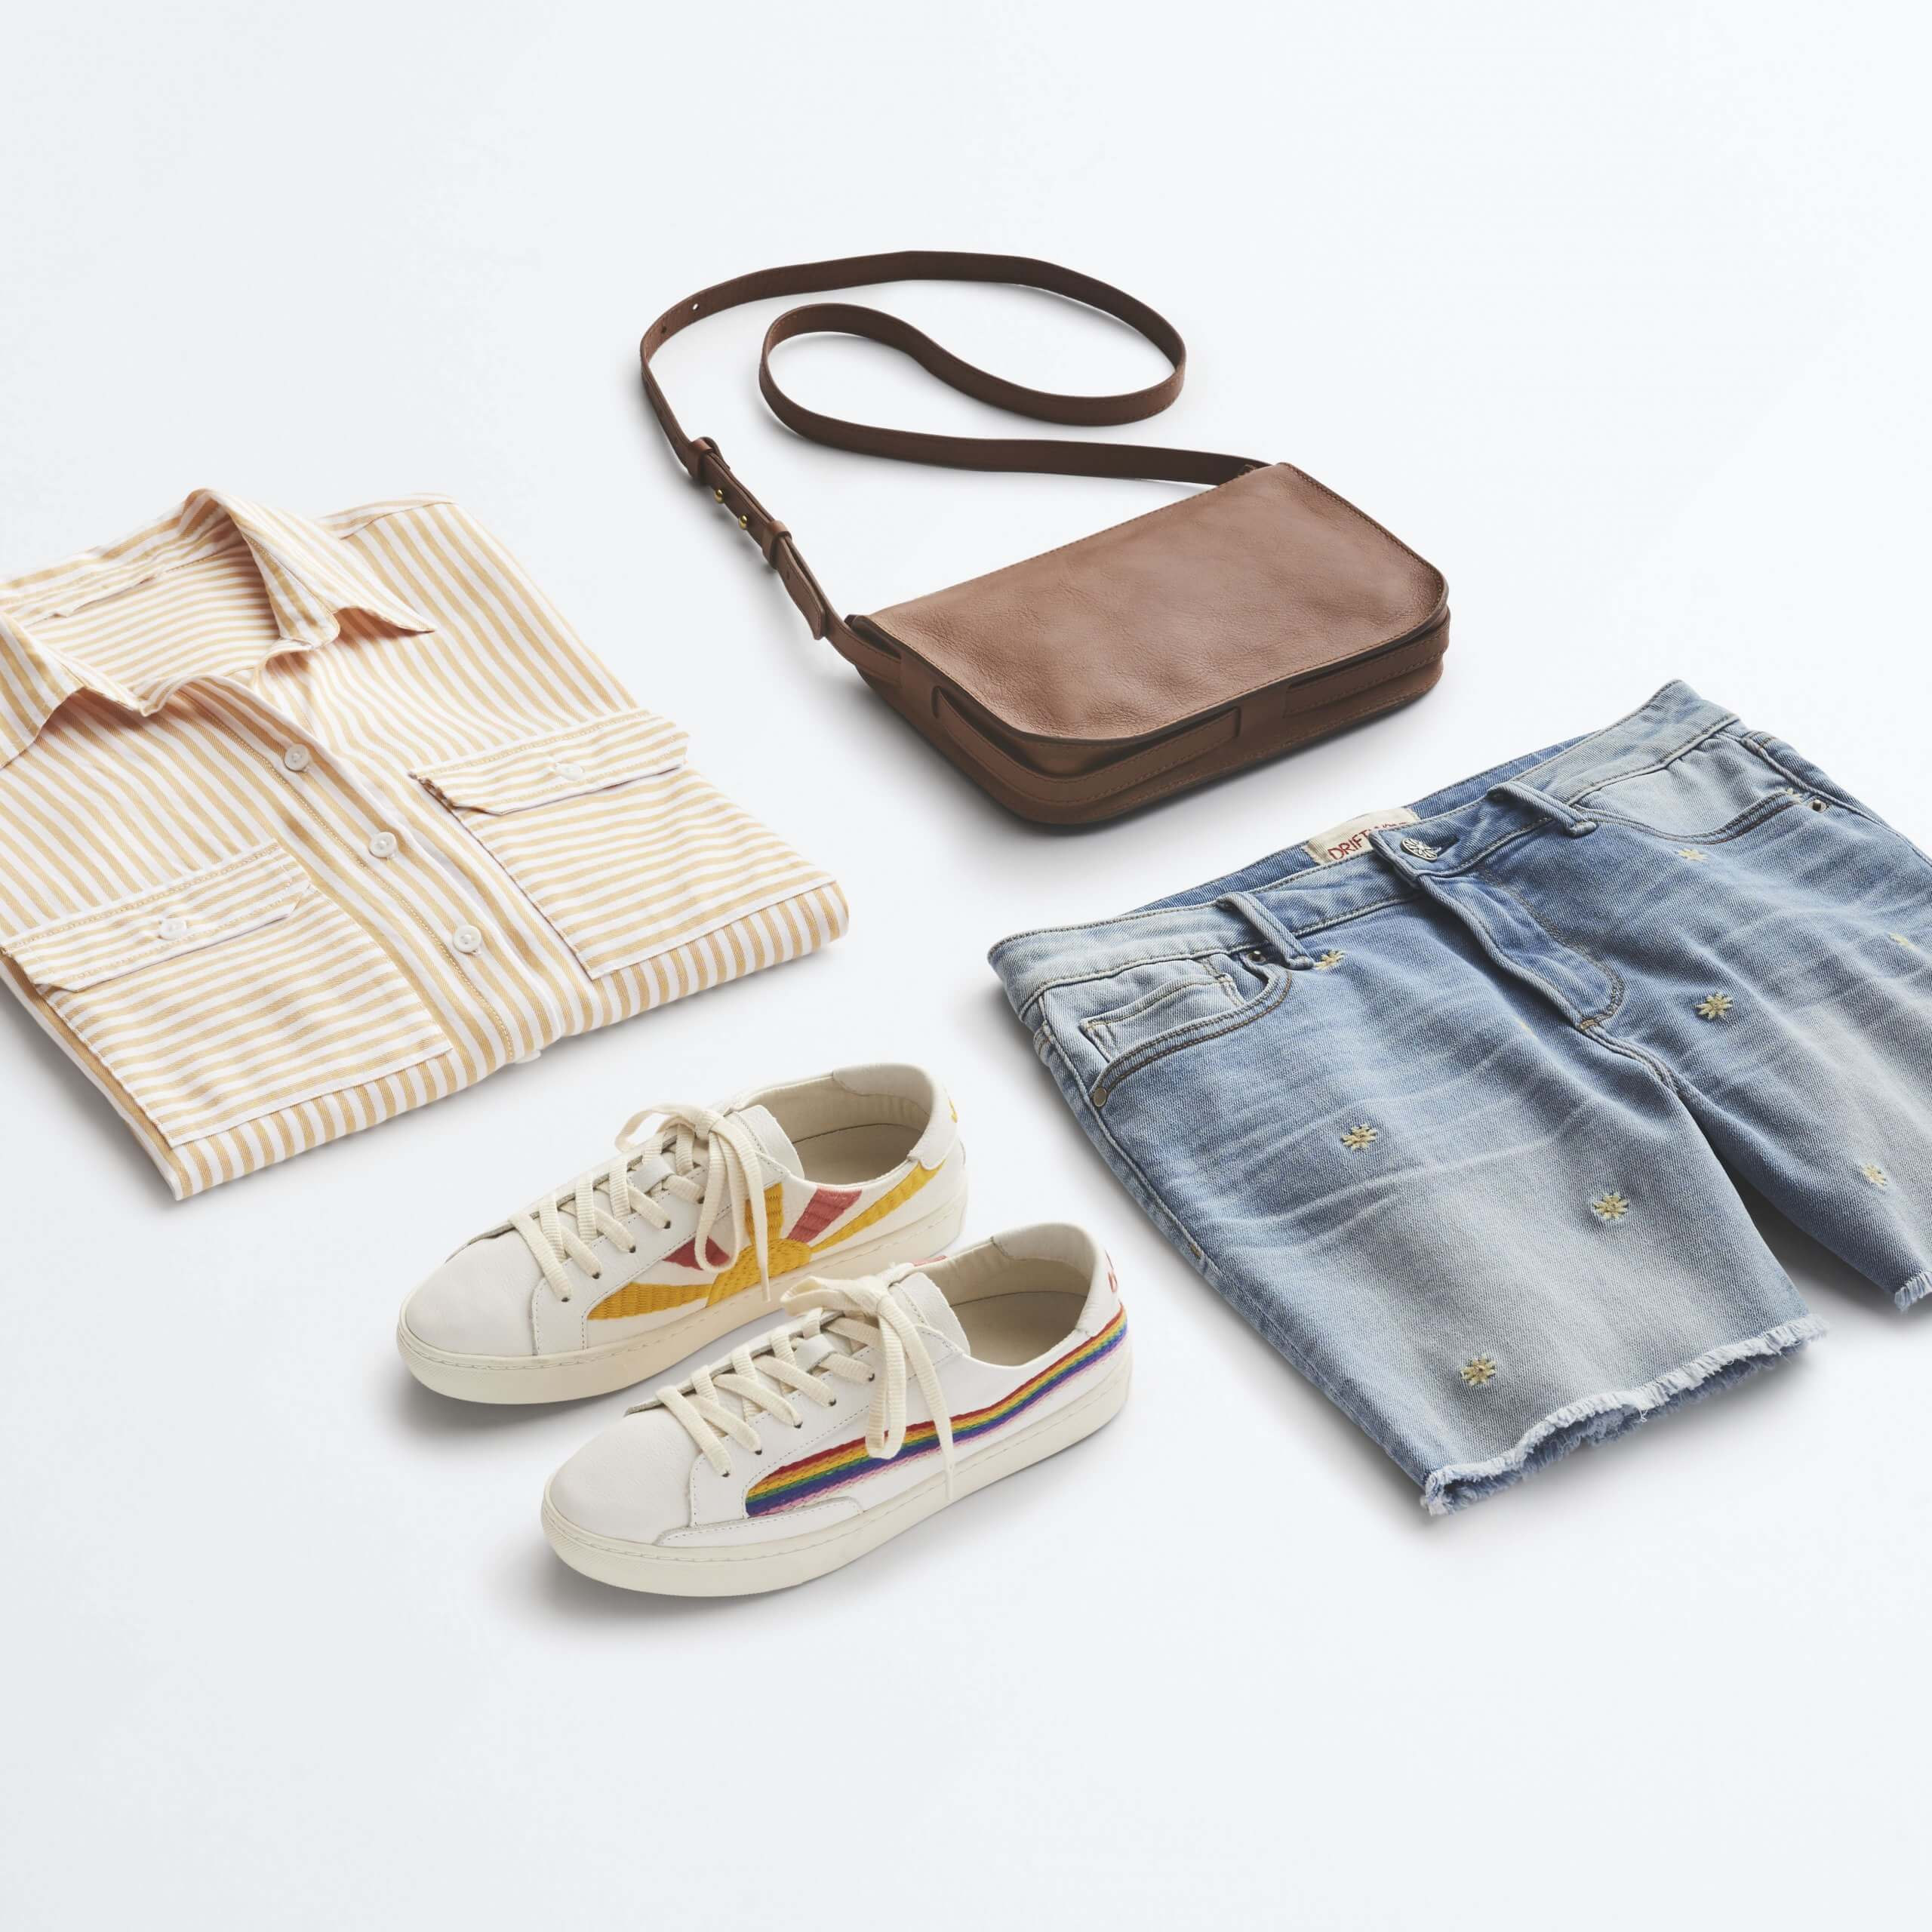 Stitch Fix Women's outfit laydown featuring cream striped button-down shirt, cut-off denim shorts, white sneakers with rainbow stripe and brown crossbody bag.